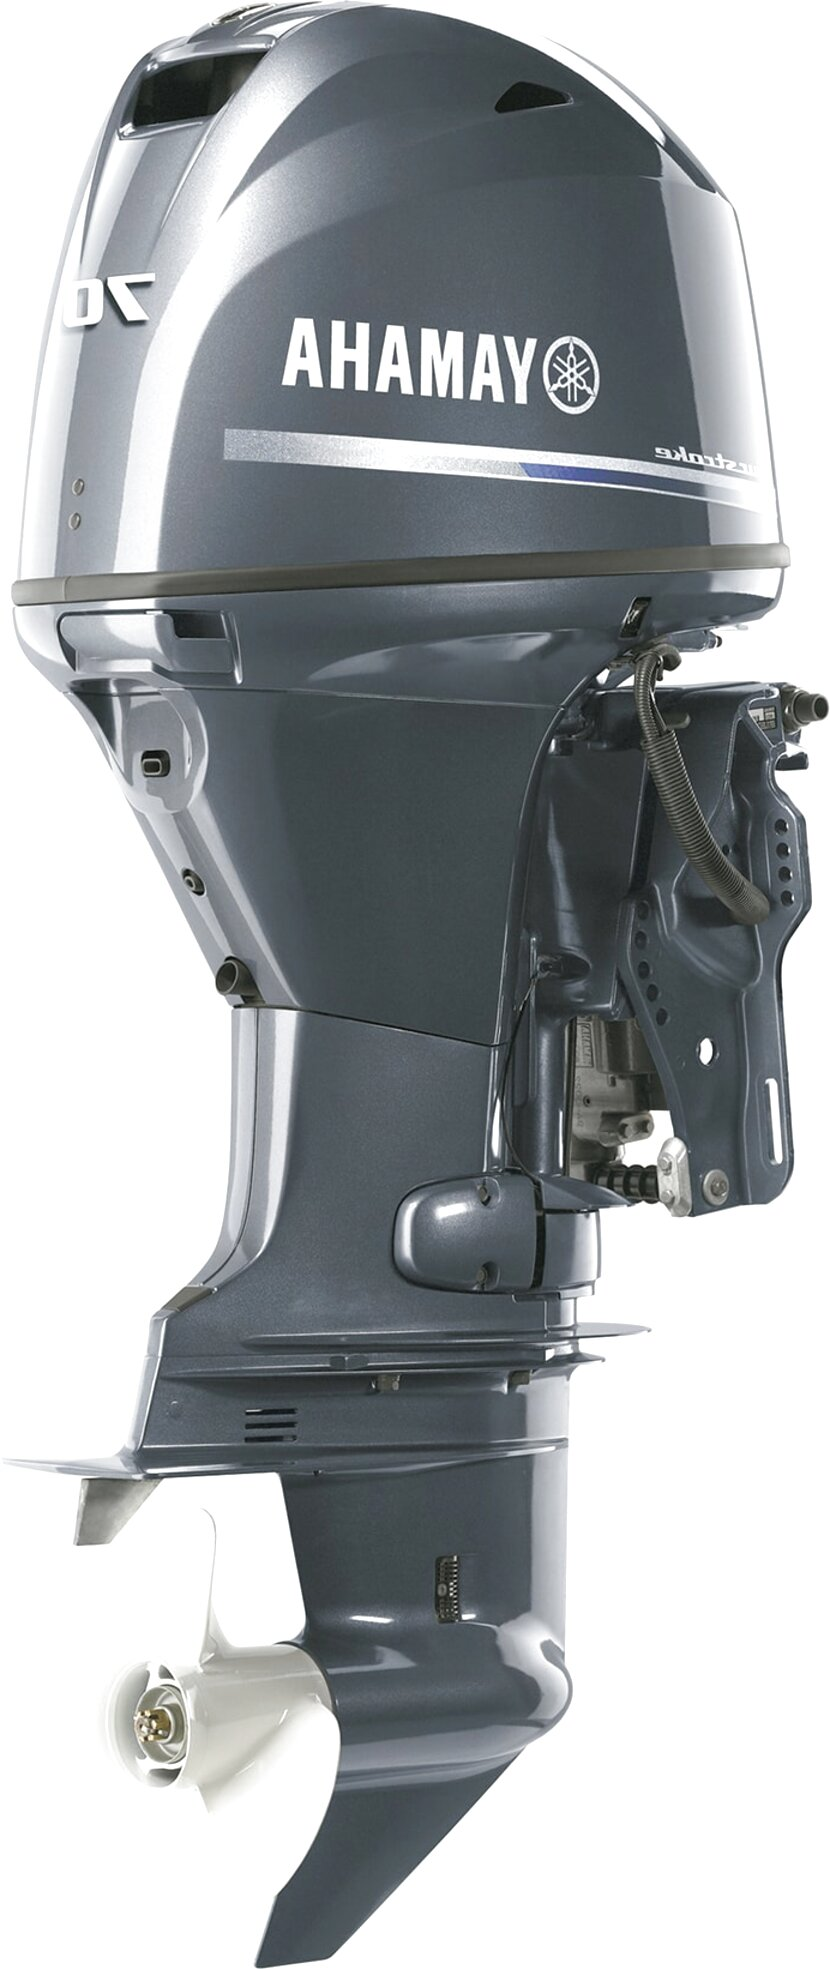 70 hp outboard motor for sale